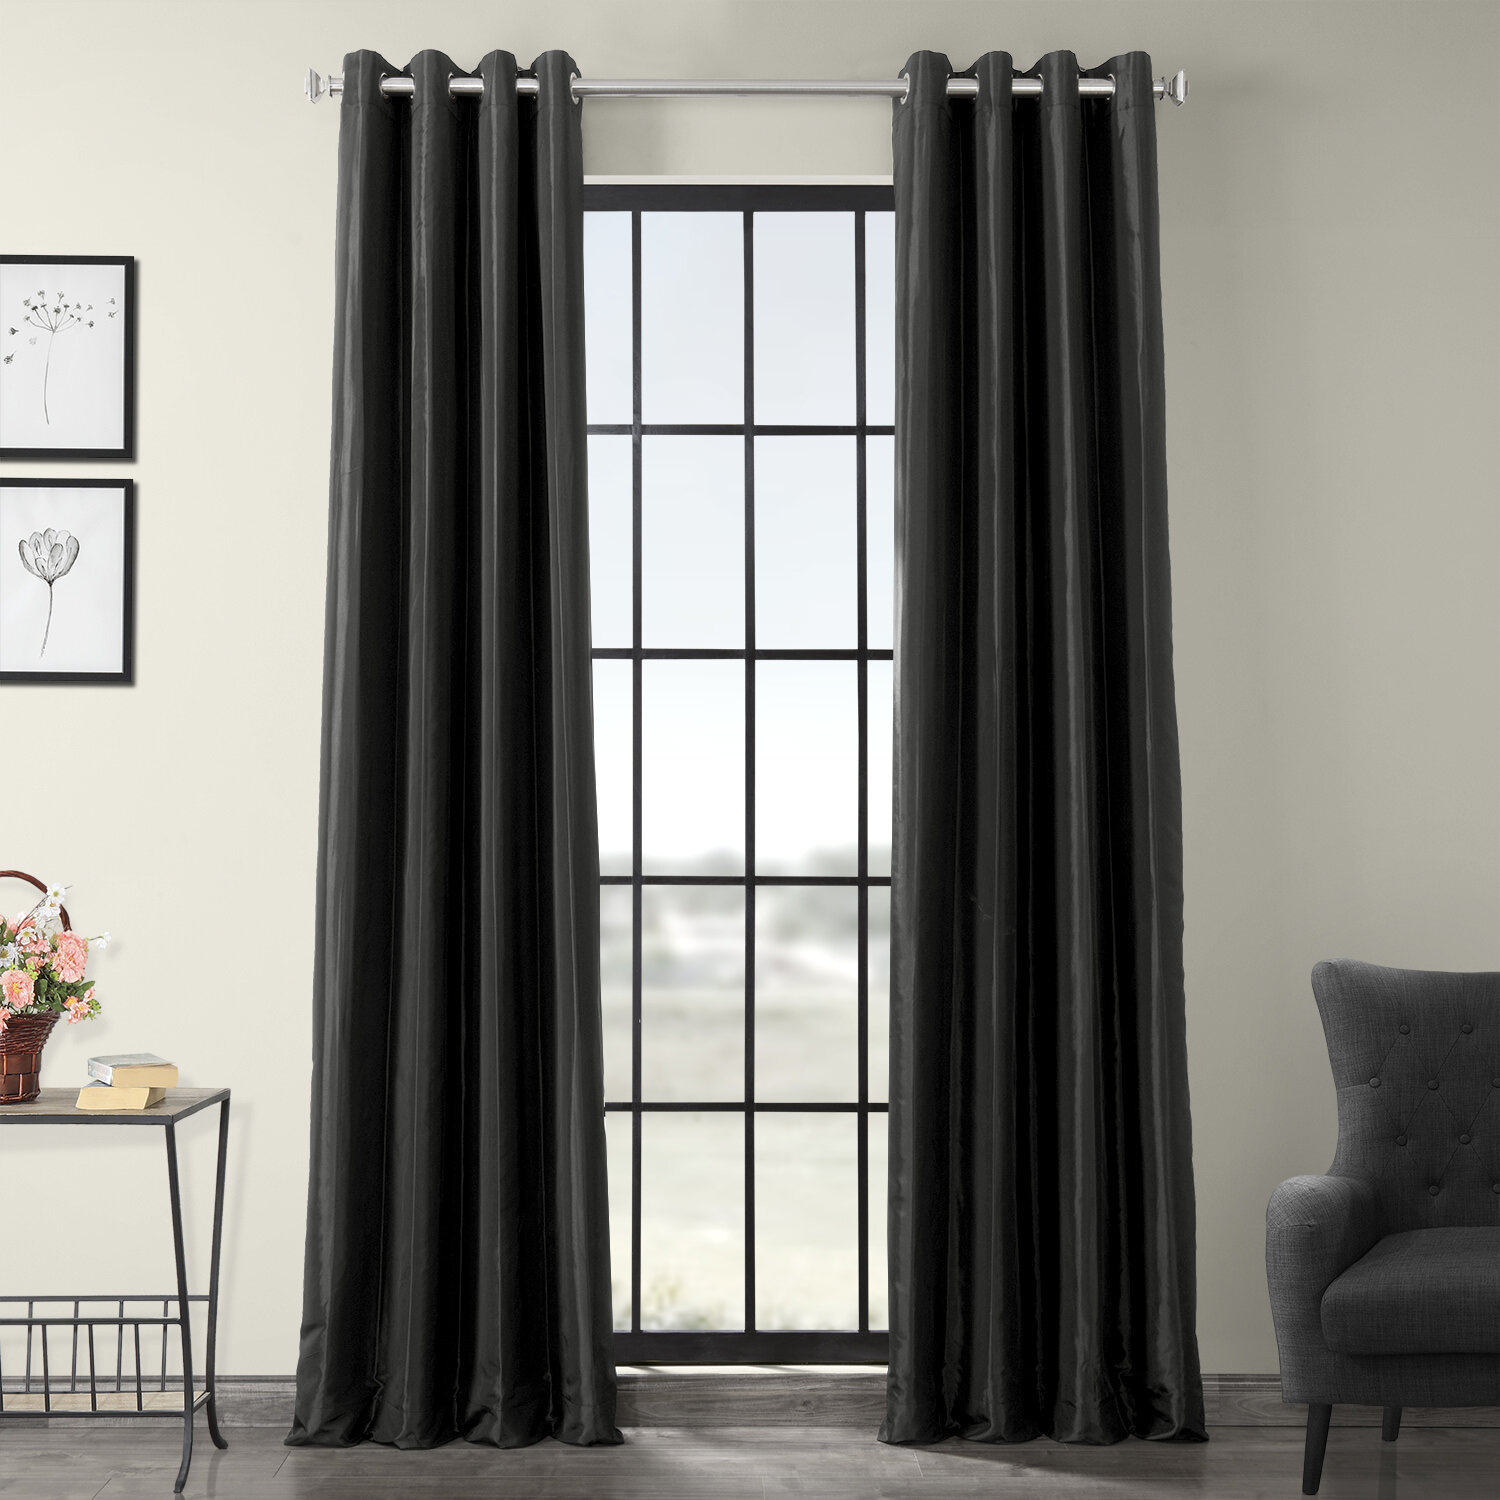 Clapham Solid Blackout Faux Silk Taffeta Thermal Rod Pocket Single Curtain Panel With Regard To Faux Silk Taffeta Solid Blackout Single Curtain Panels (View 12 of 20)